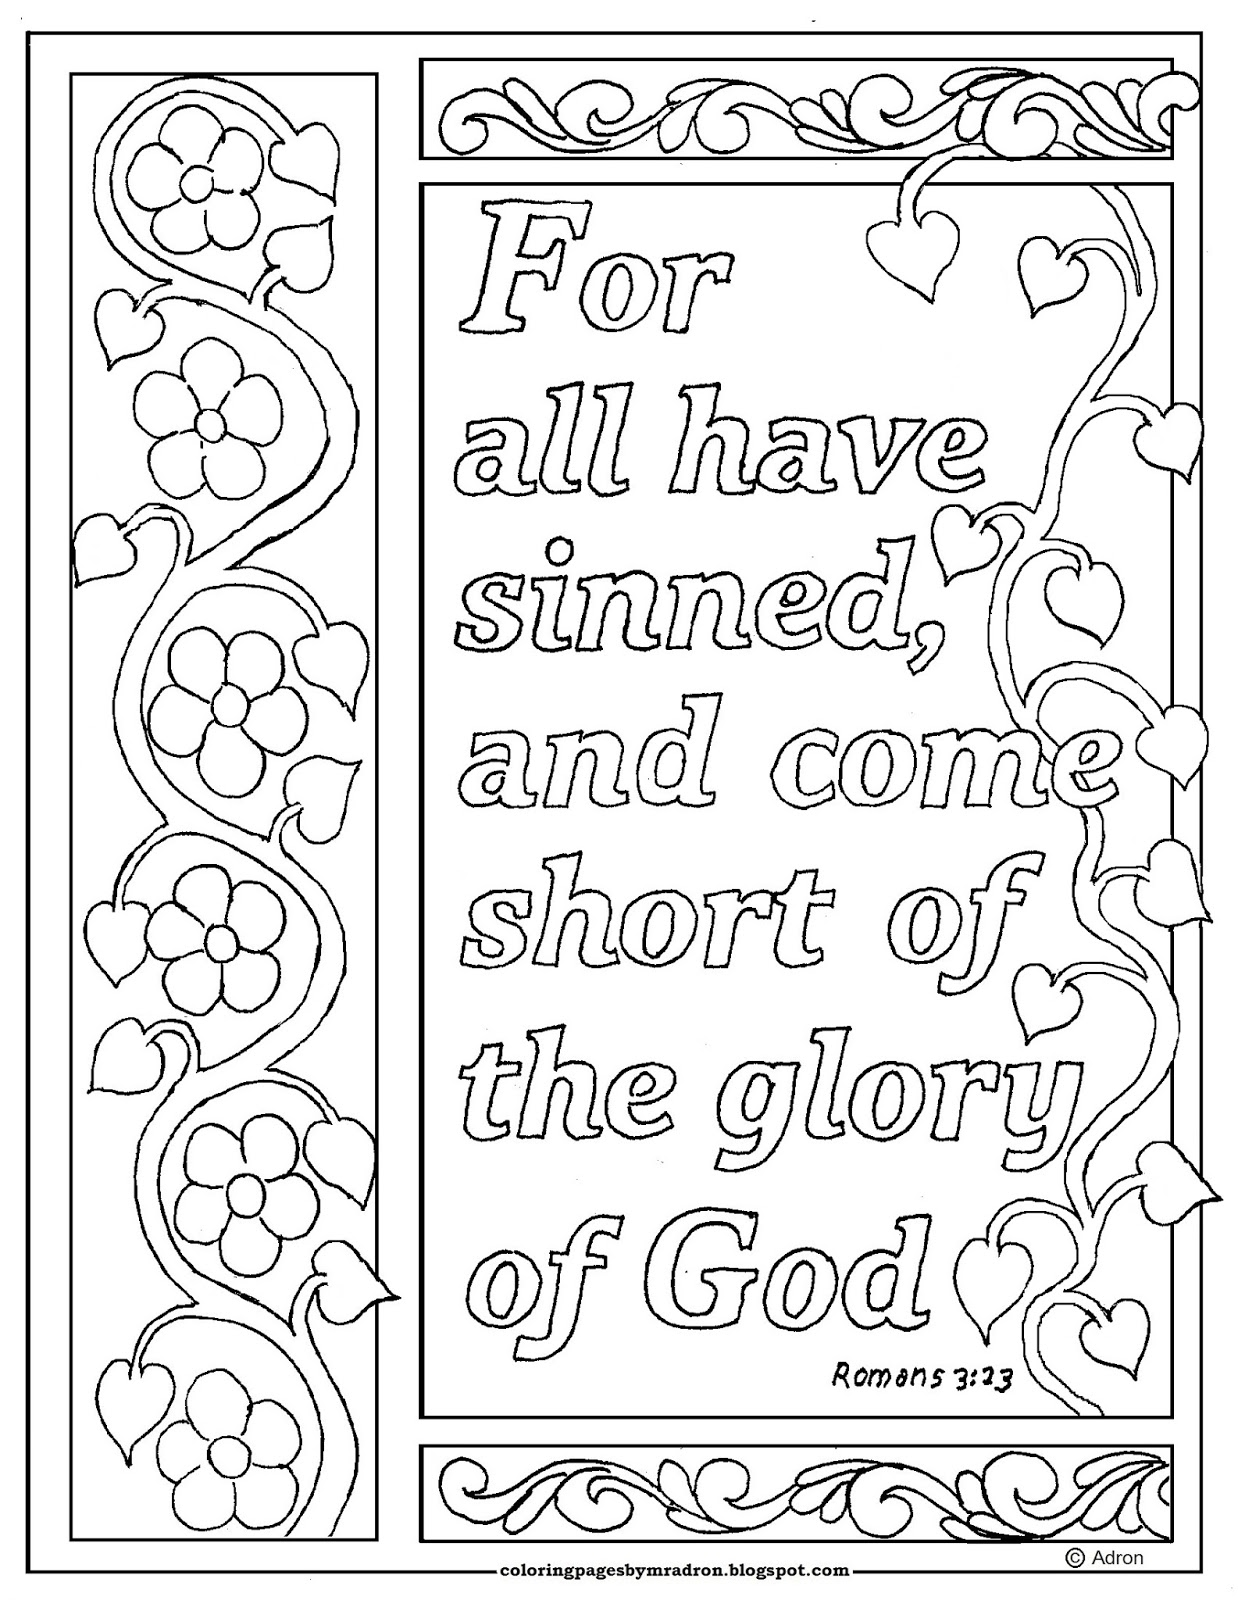 romans 5 8 coloring sheet this free coloring page is based on the book of romans it 8 5 romans coloring sheet